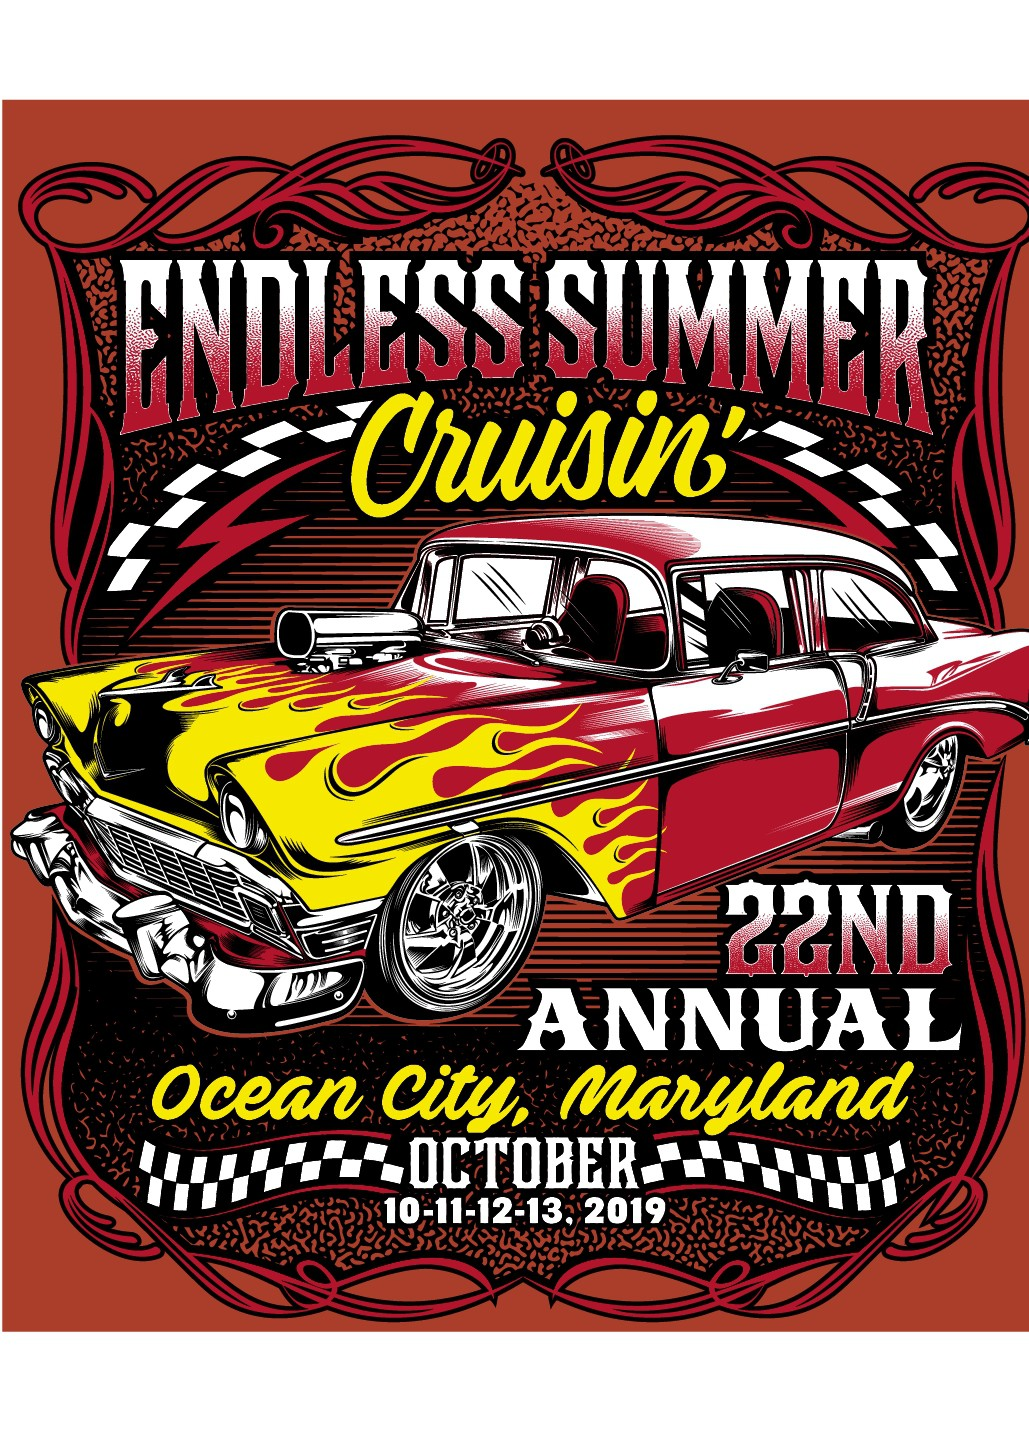 Classic Car Show t-shirts and apparel